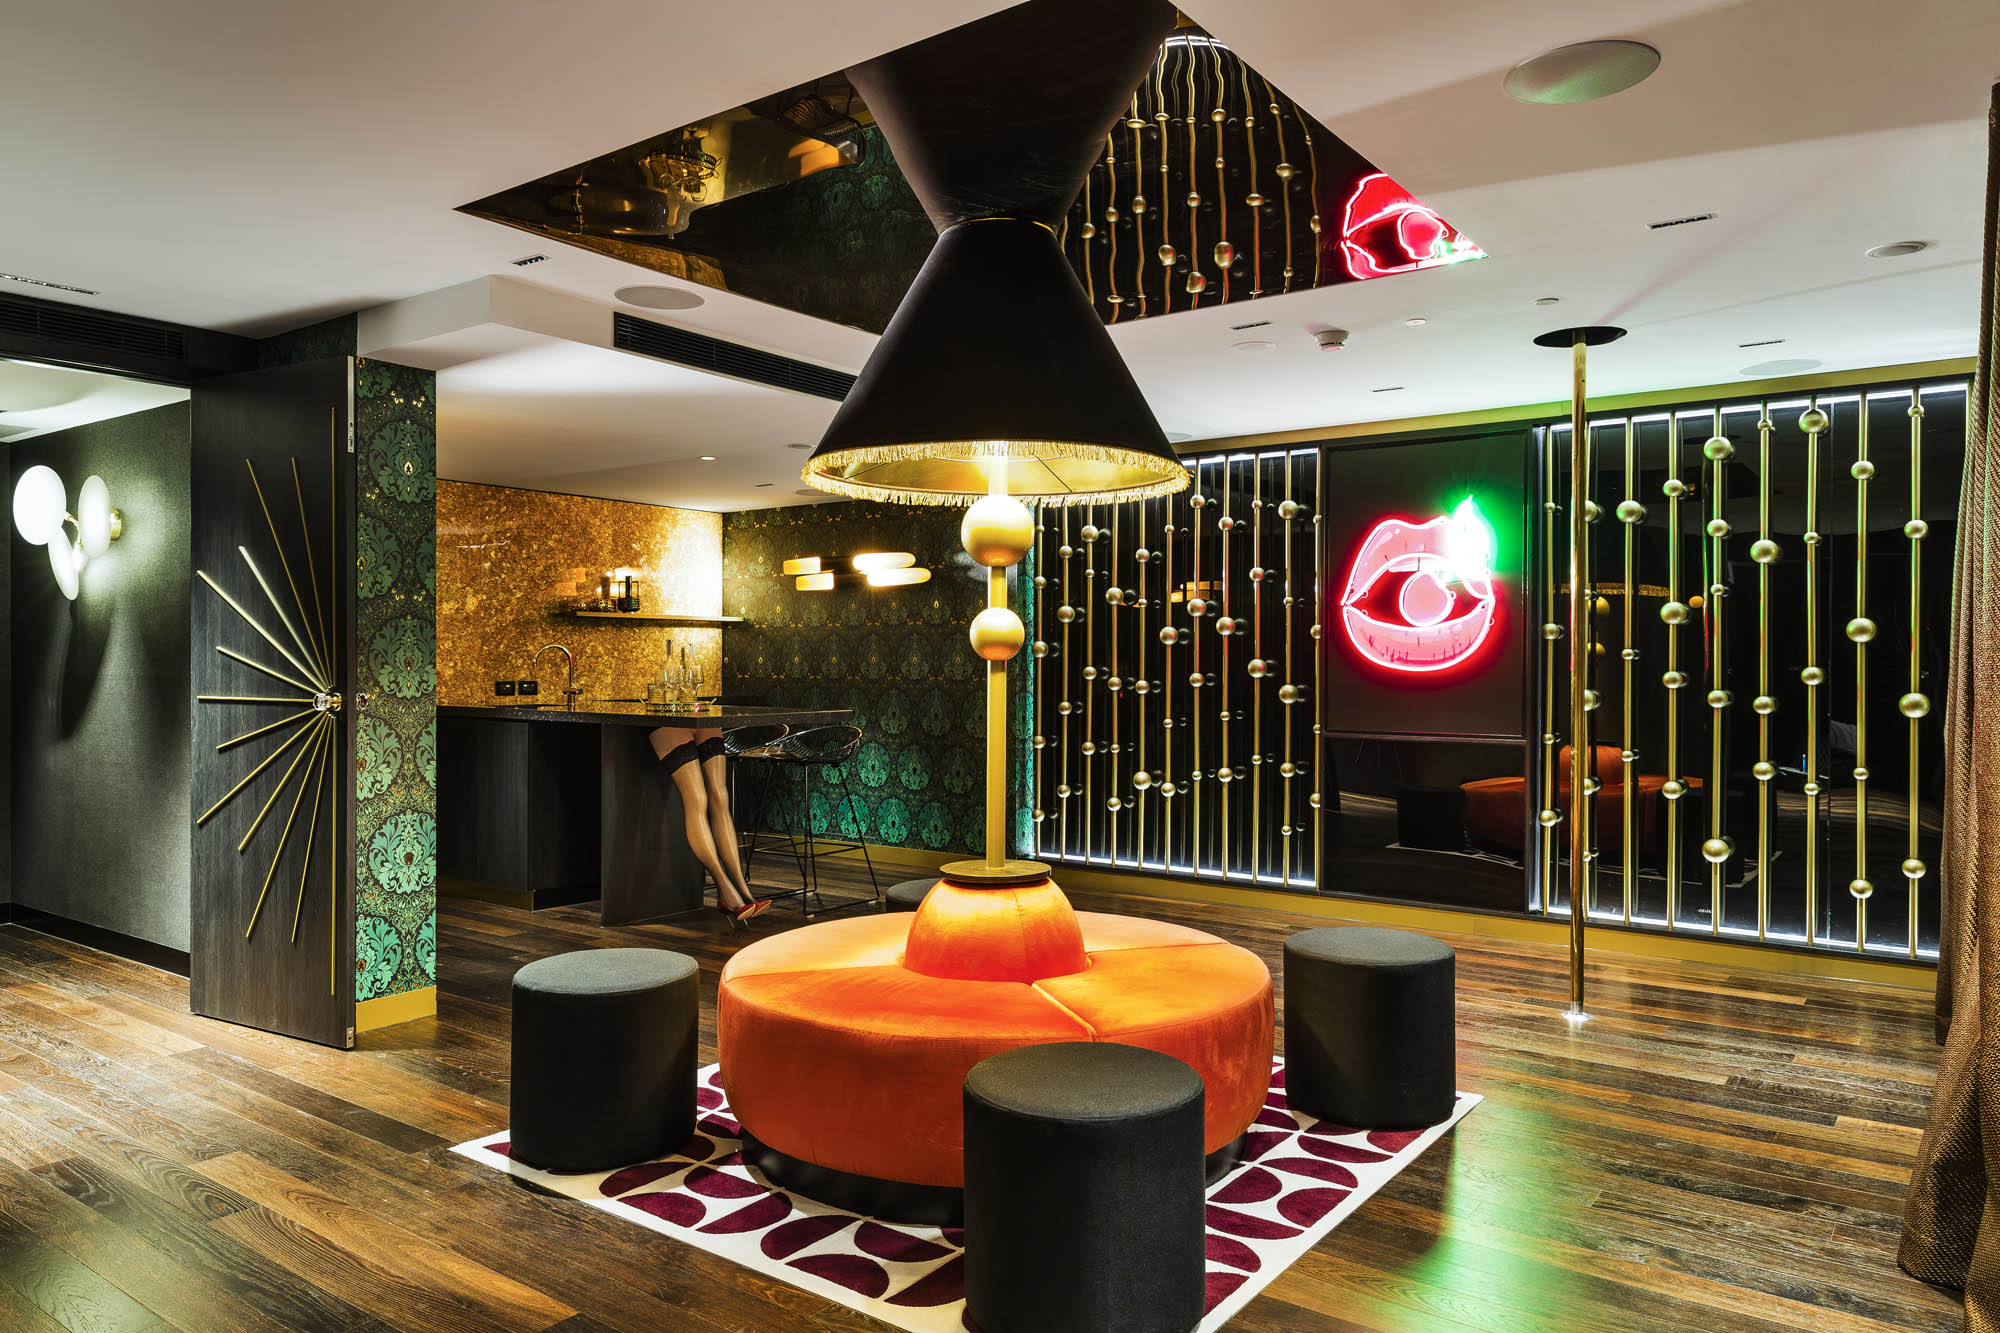 studios at the star sydney hotels design and construct nsw 70s glam mirrored walls neon lights ottomans karaoke lounge velvet